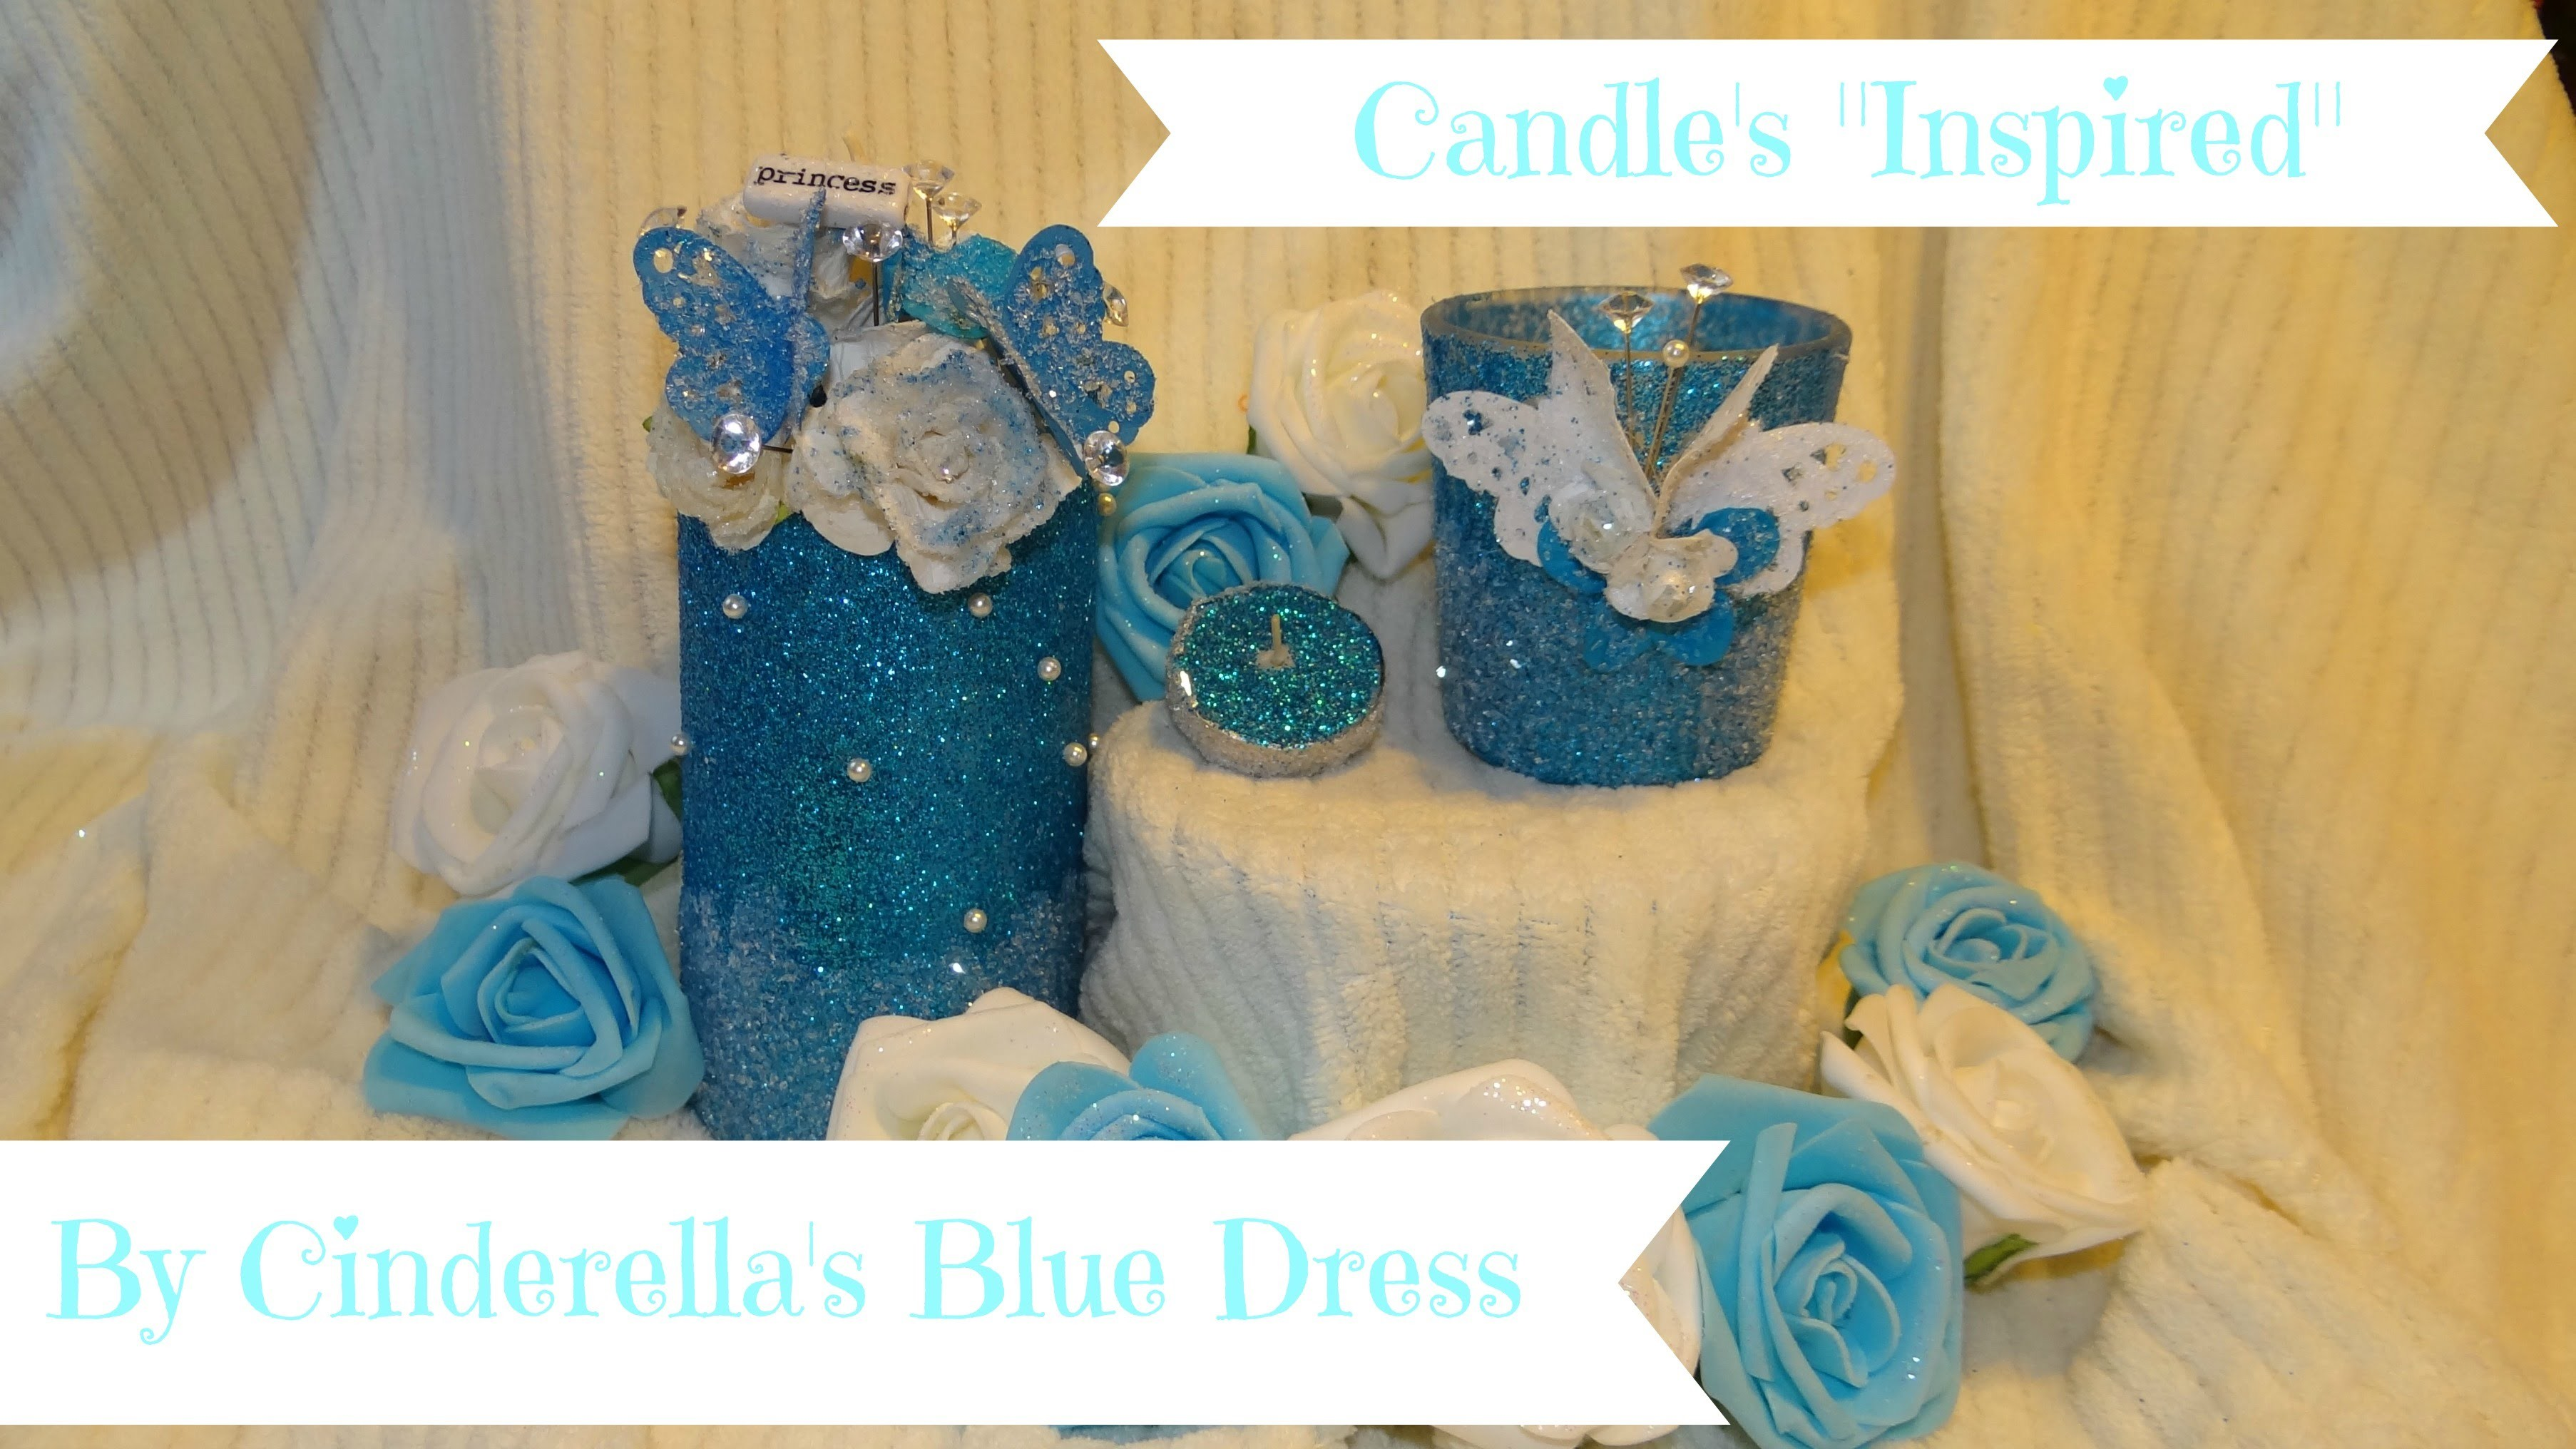 DIY: Glitter Candle Centerpiece inspired by Cinderella's Blue Dress